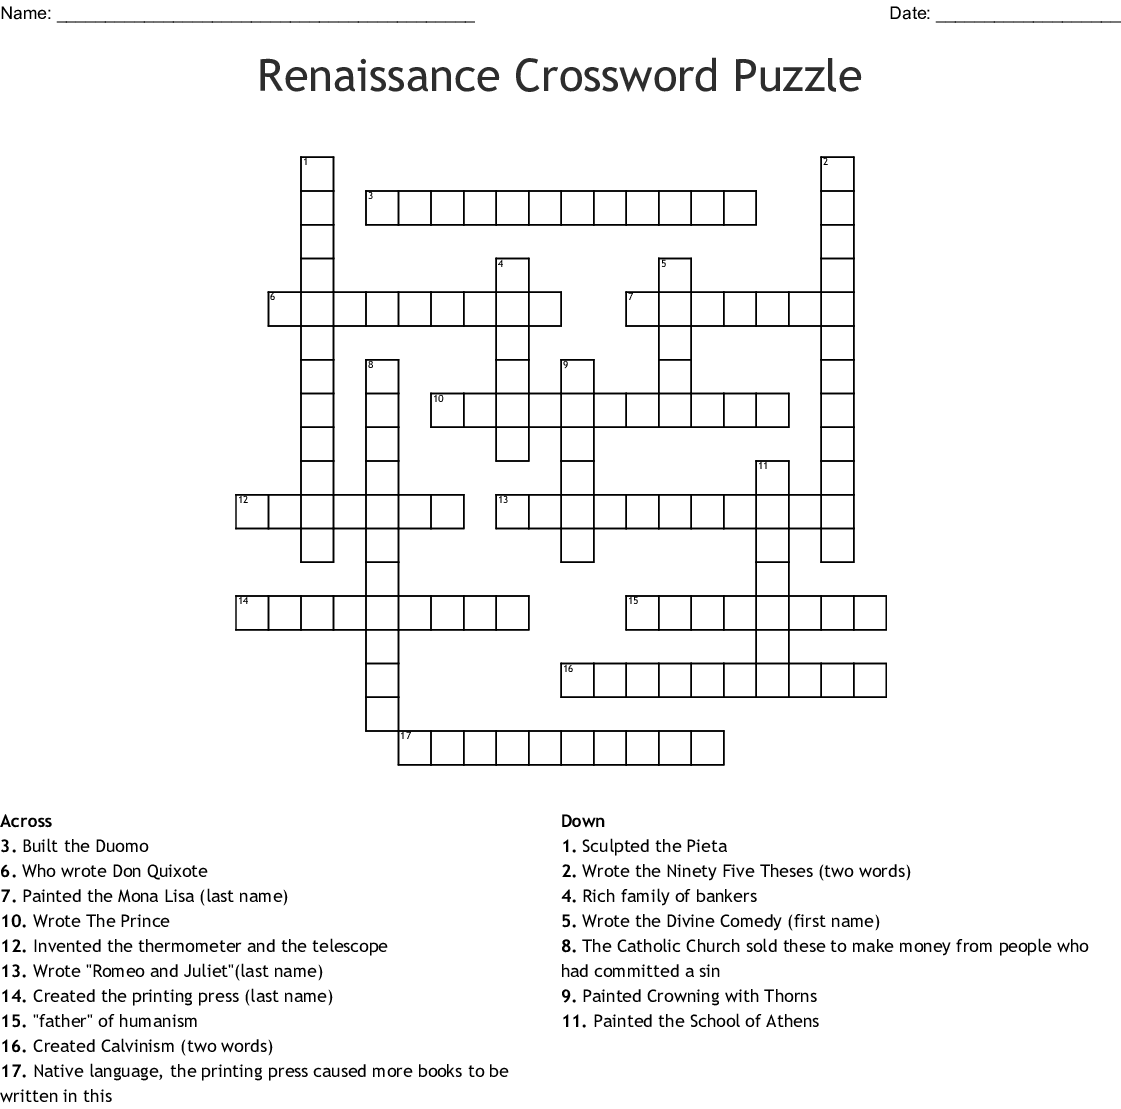 Renaissance Crossword Puzzle Crossword